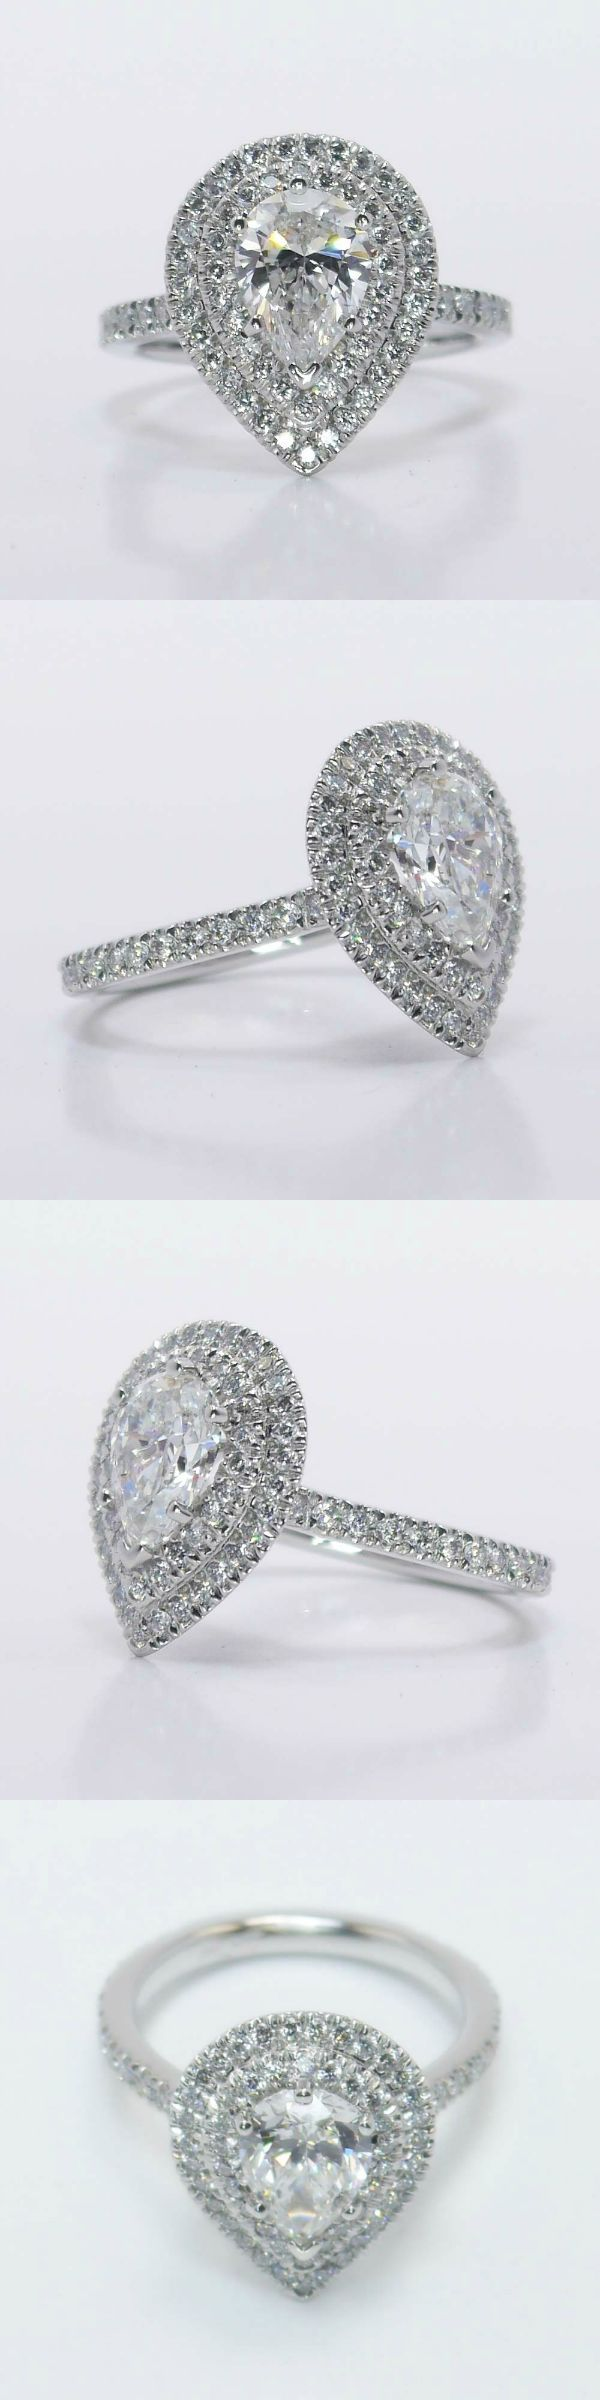 cut wholesale with very gia good diamond color fascinating certified e clarity carat diamonds shaped heart